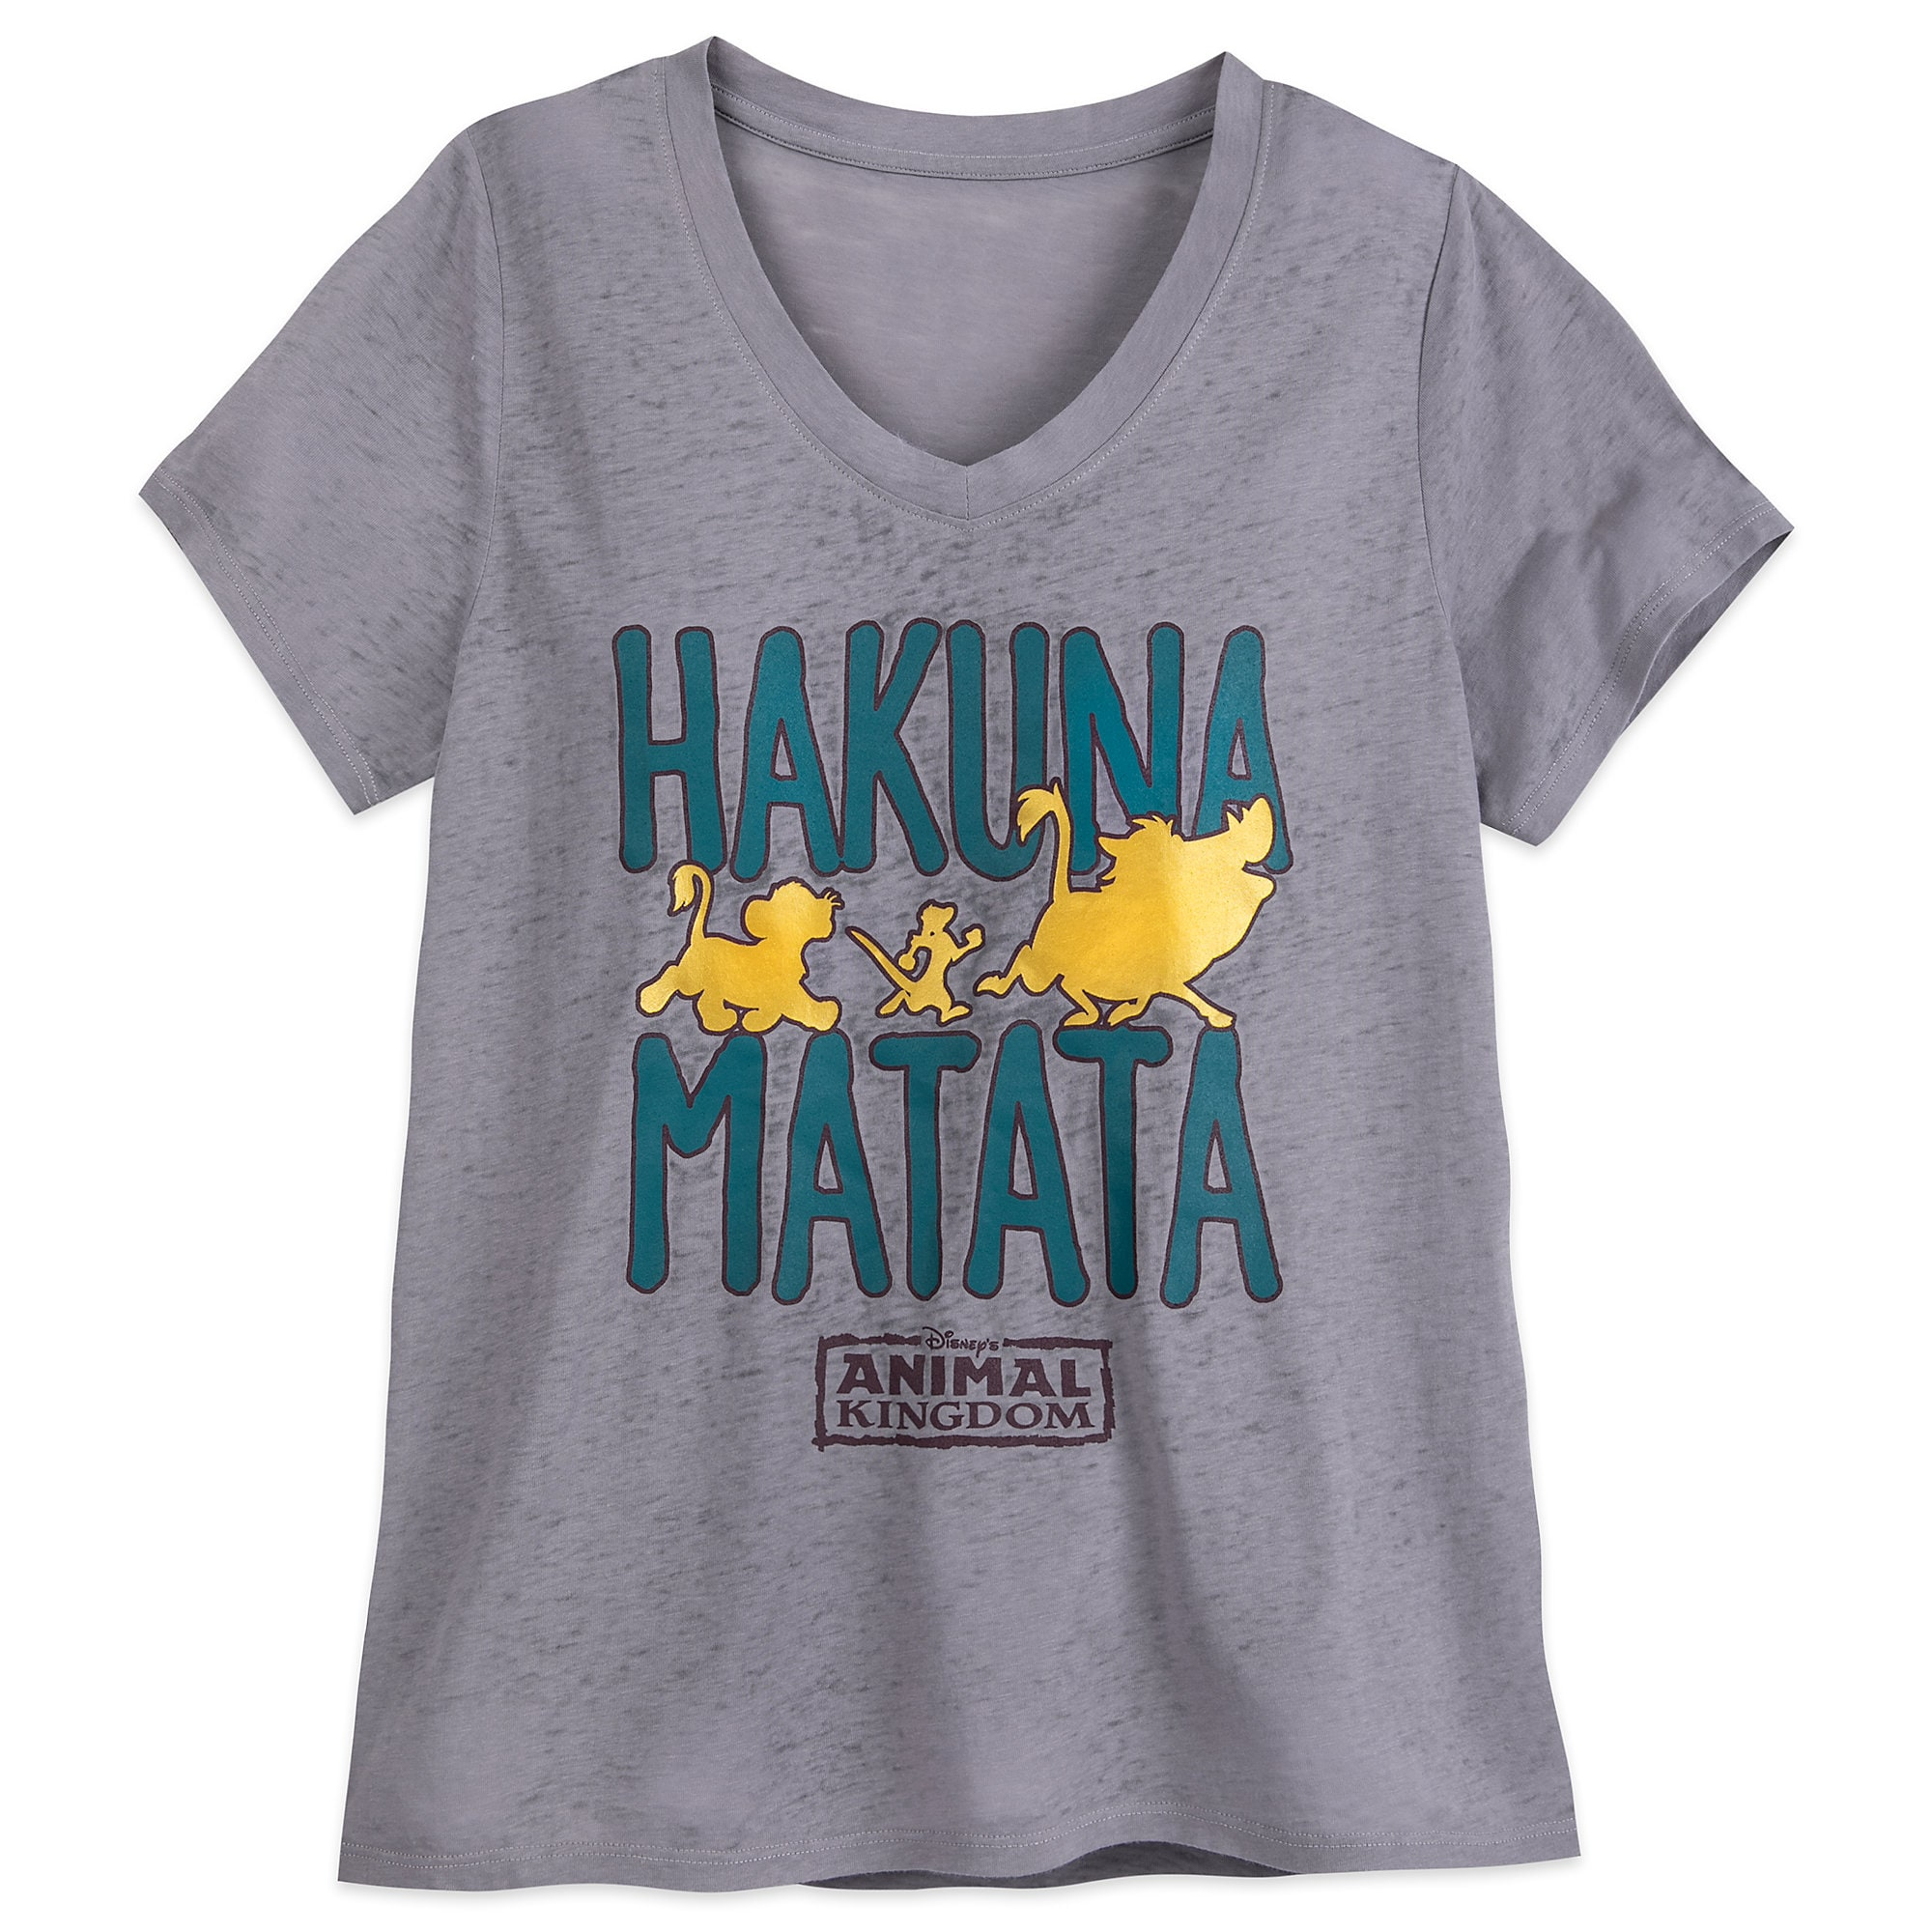 7c7332dbc295 The Lion King ''Hakuna Matata'' T-Shirt for Women - Disney's Animal Kingdom  | shopDisney